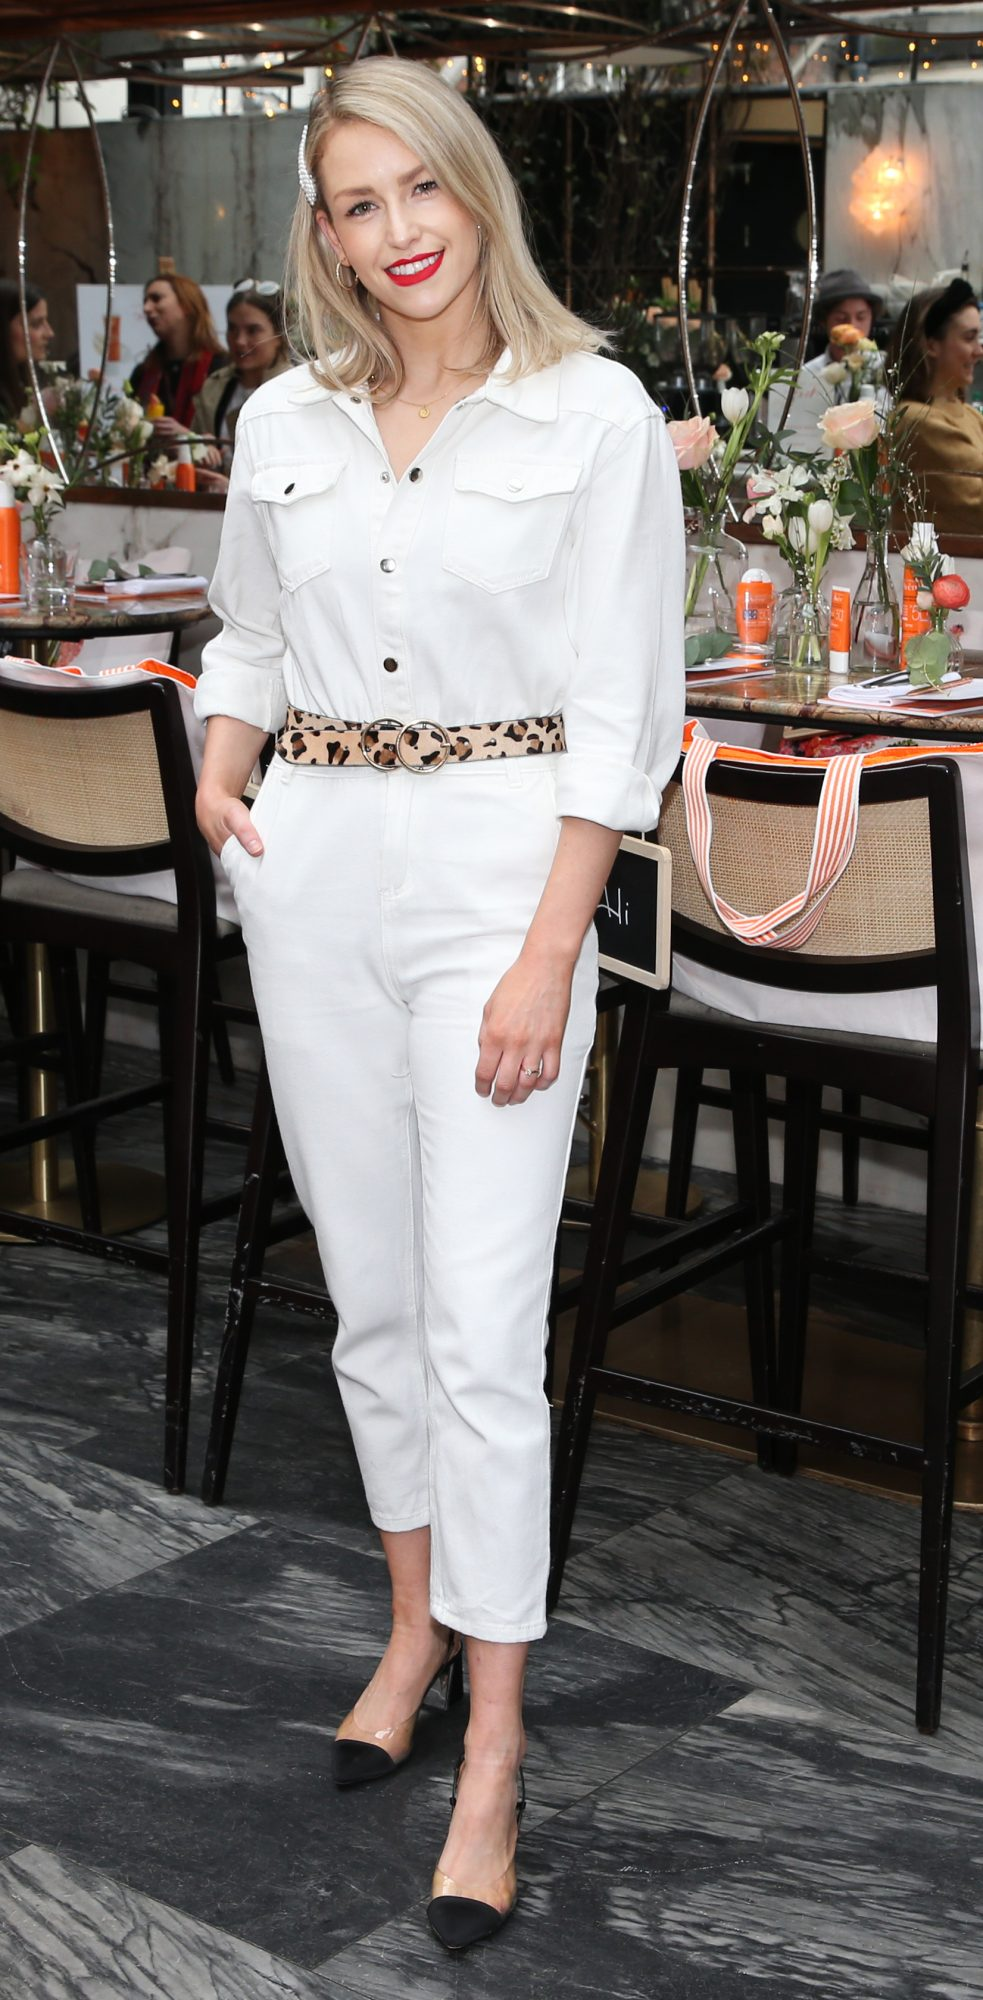 Pictured is Lia Stokes at the launch of the new Avène Expert Suncare Range in The Grayson Dublin. The new range of suncare from the French brand is suitable for all skin types and includes a Sports Sun Cream, a City Shield BB Style High Protection Face Cream, two new SPF Body Sprays and a new Very High Protection Children's SPF. For more information visit www.avene.ie. Photo: Leon Farrell/Photocall Ireland.